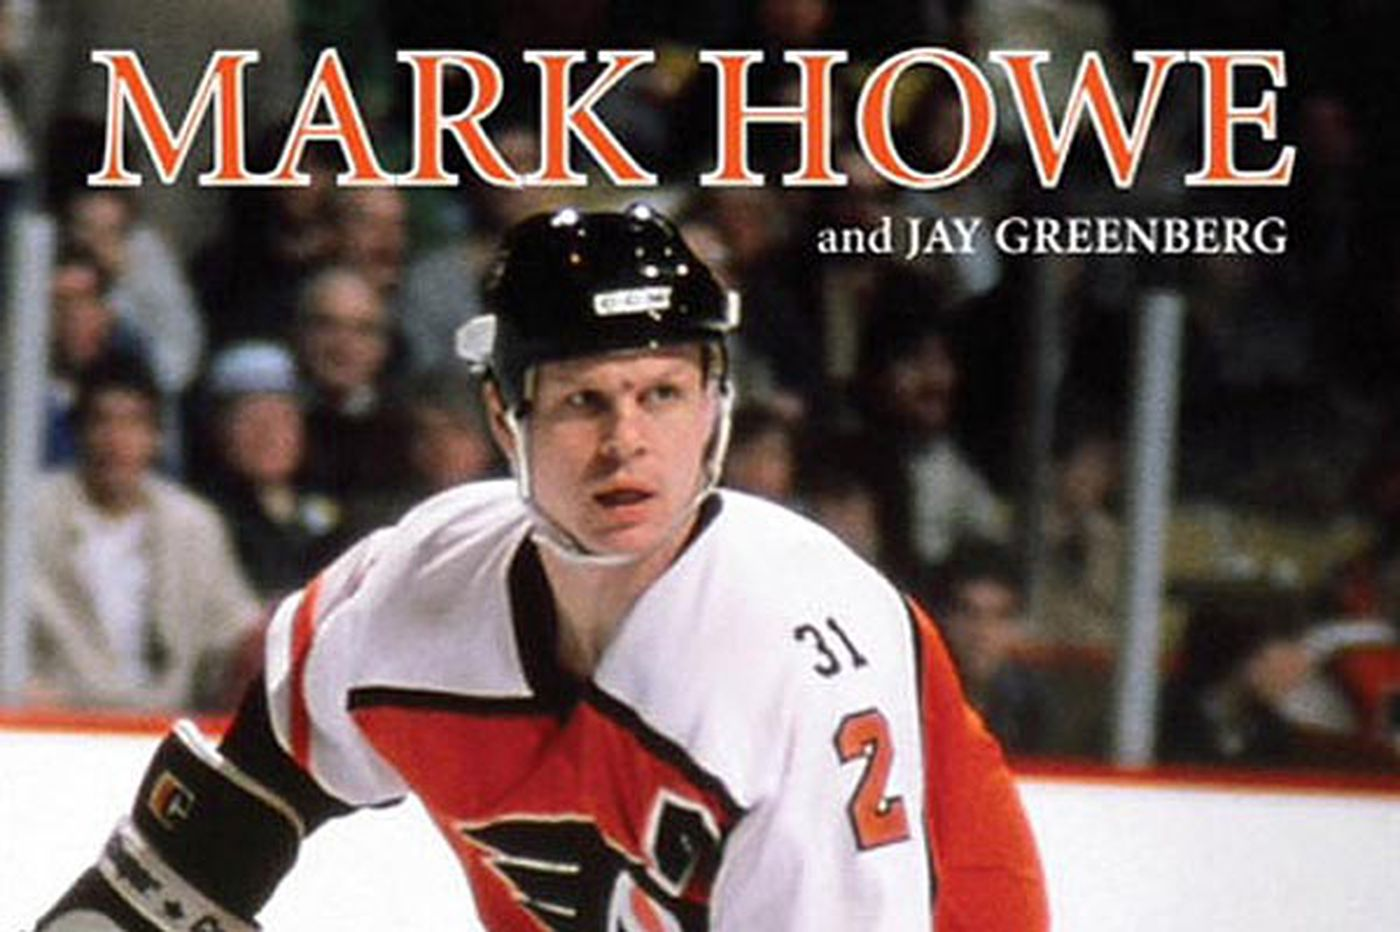 Mark Howe's book: Life as Gordie's son